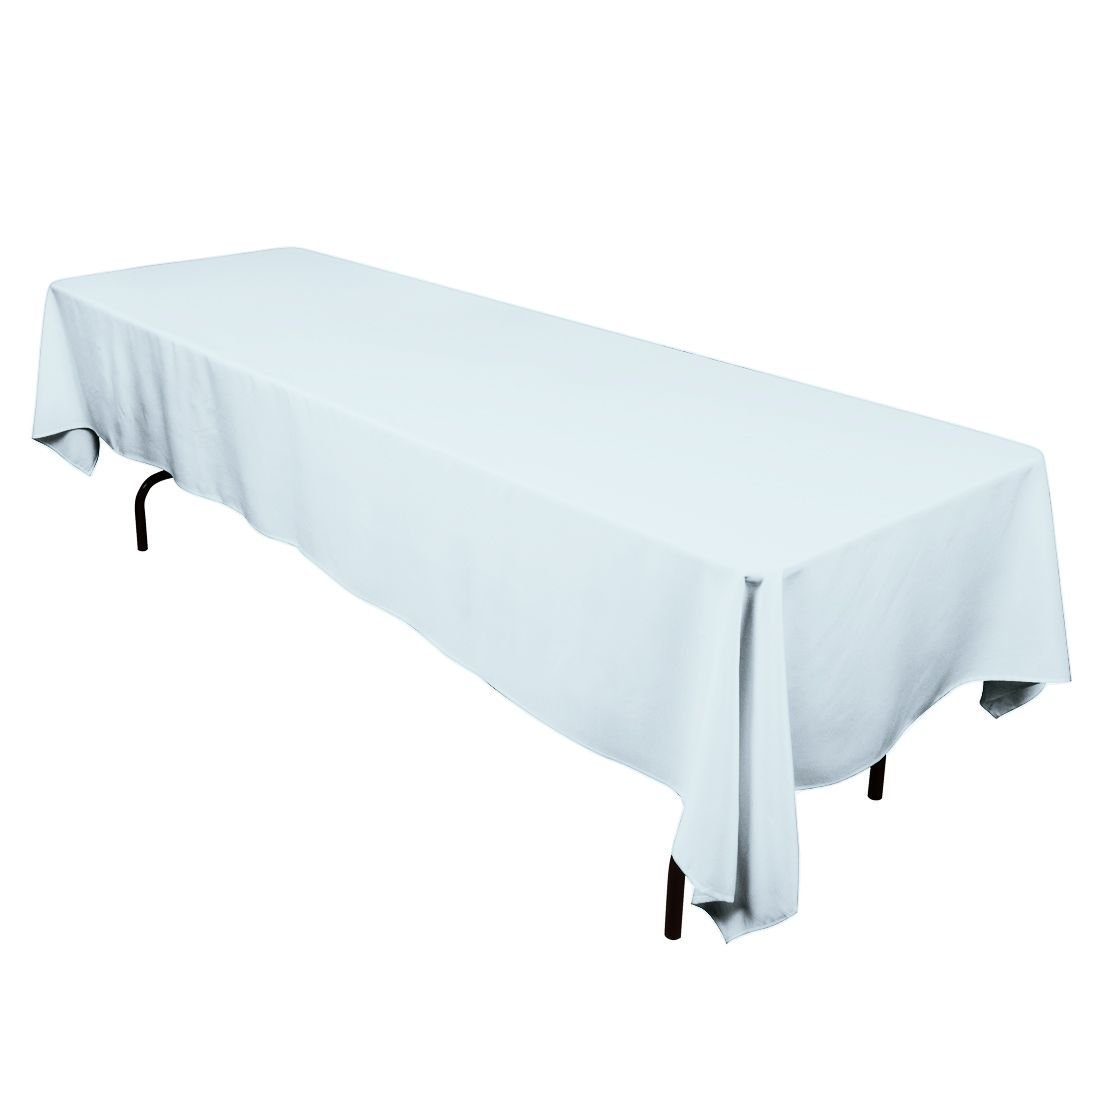 Gee Di Moda Rectangle Tablecloth - 60 x 126 Inch - Baby Blue Rectangular Table Cloth for 8 Foot Table in Washable Polyester - Great for Buffet Table, Parties, Holiday Dinner, Wedding & More GDMPRT60126BB